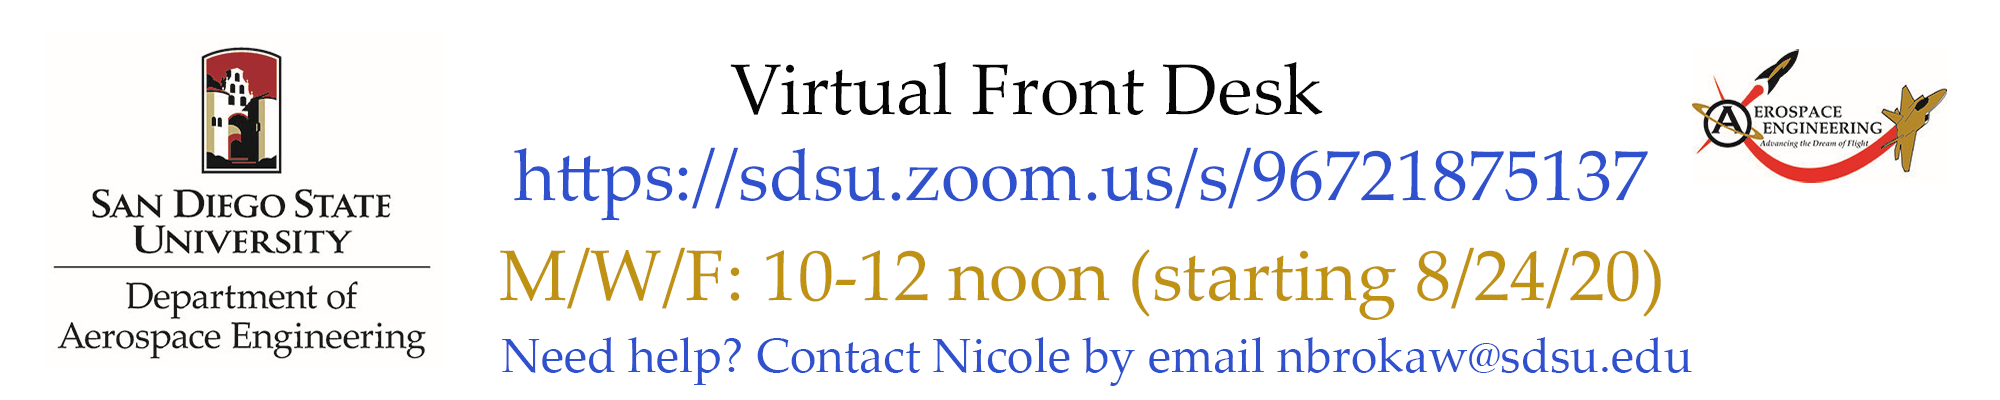 Virtual Front Desk for the AE department office: https://sdsu.zoom.us/s/96721875137   M/W/F: 10-12 noon (starting 8/24/20)